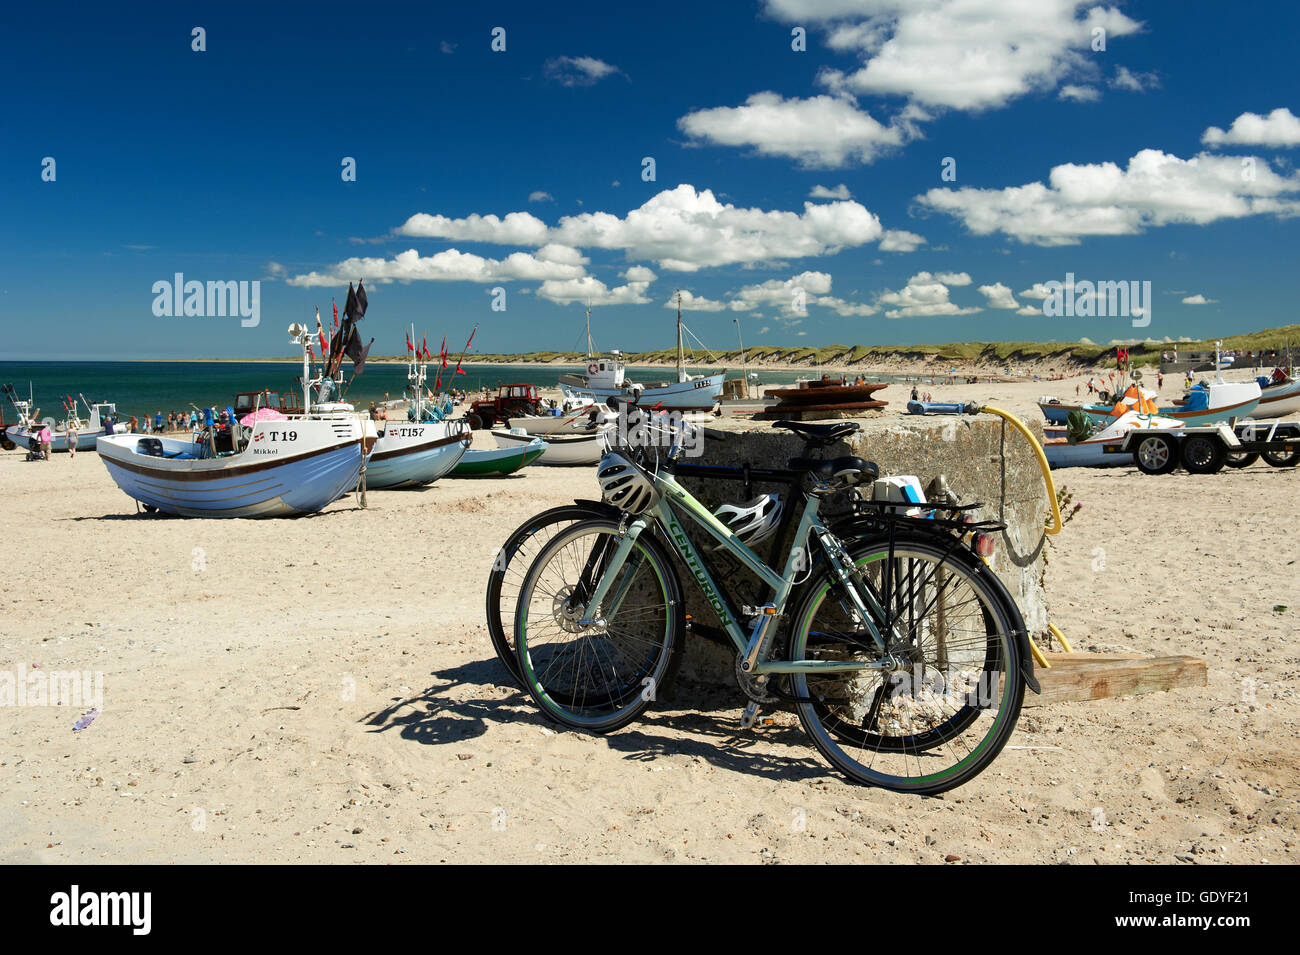 Bicycles parked at the beach with fishingboats landingplace in the background - Nr. Vorupoer (Nr. Vorupør), - Stock Image